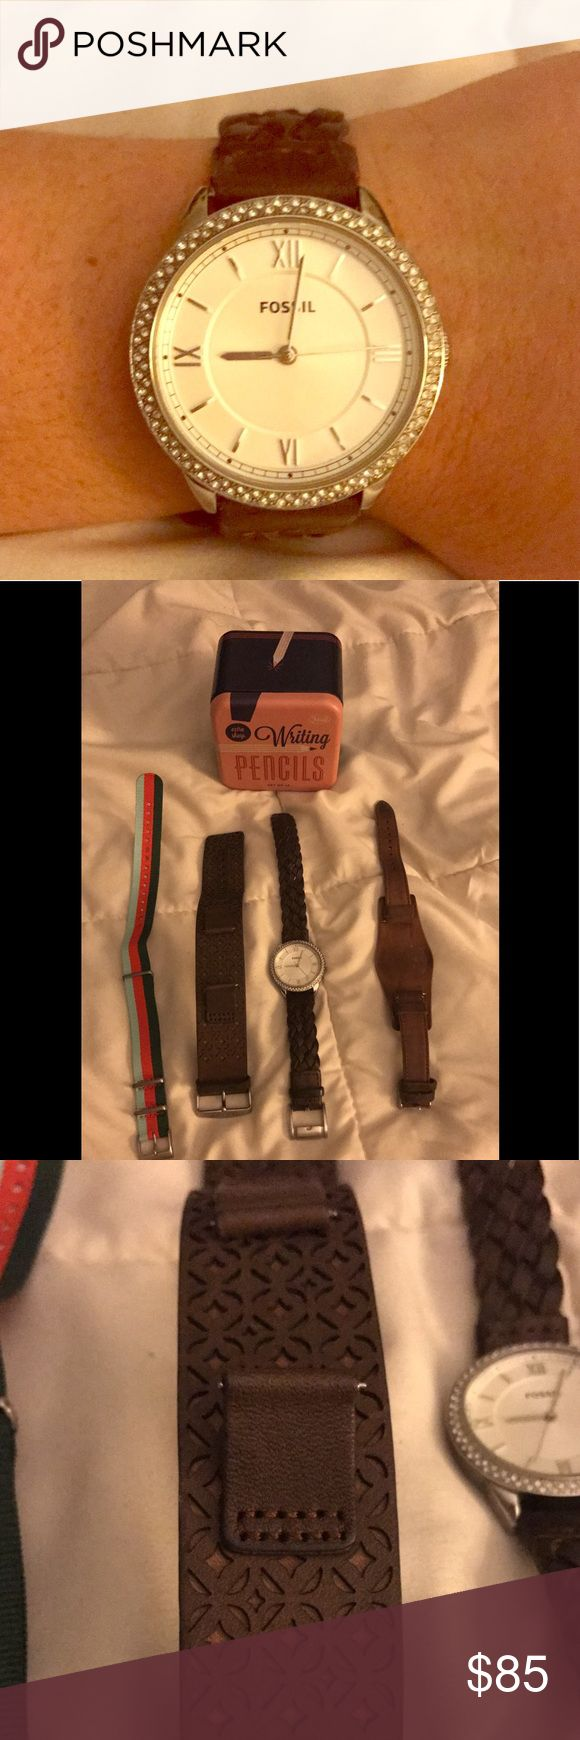 Silver Fossil watch and bands ⌚️ Beautiful silver Fossil watch with rhinestone detail. Comes with 4 Fossil interchangeable bands: one plain tan leather, one woven brown leather, one detailed brown leather cuff, one colorful striped nylon. Can purchase more watch bands to switch up the style! Fossil Accessories Watches